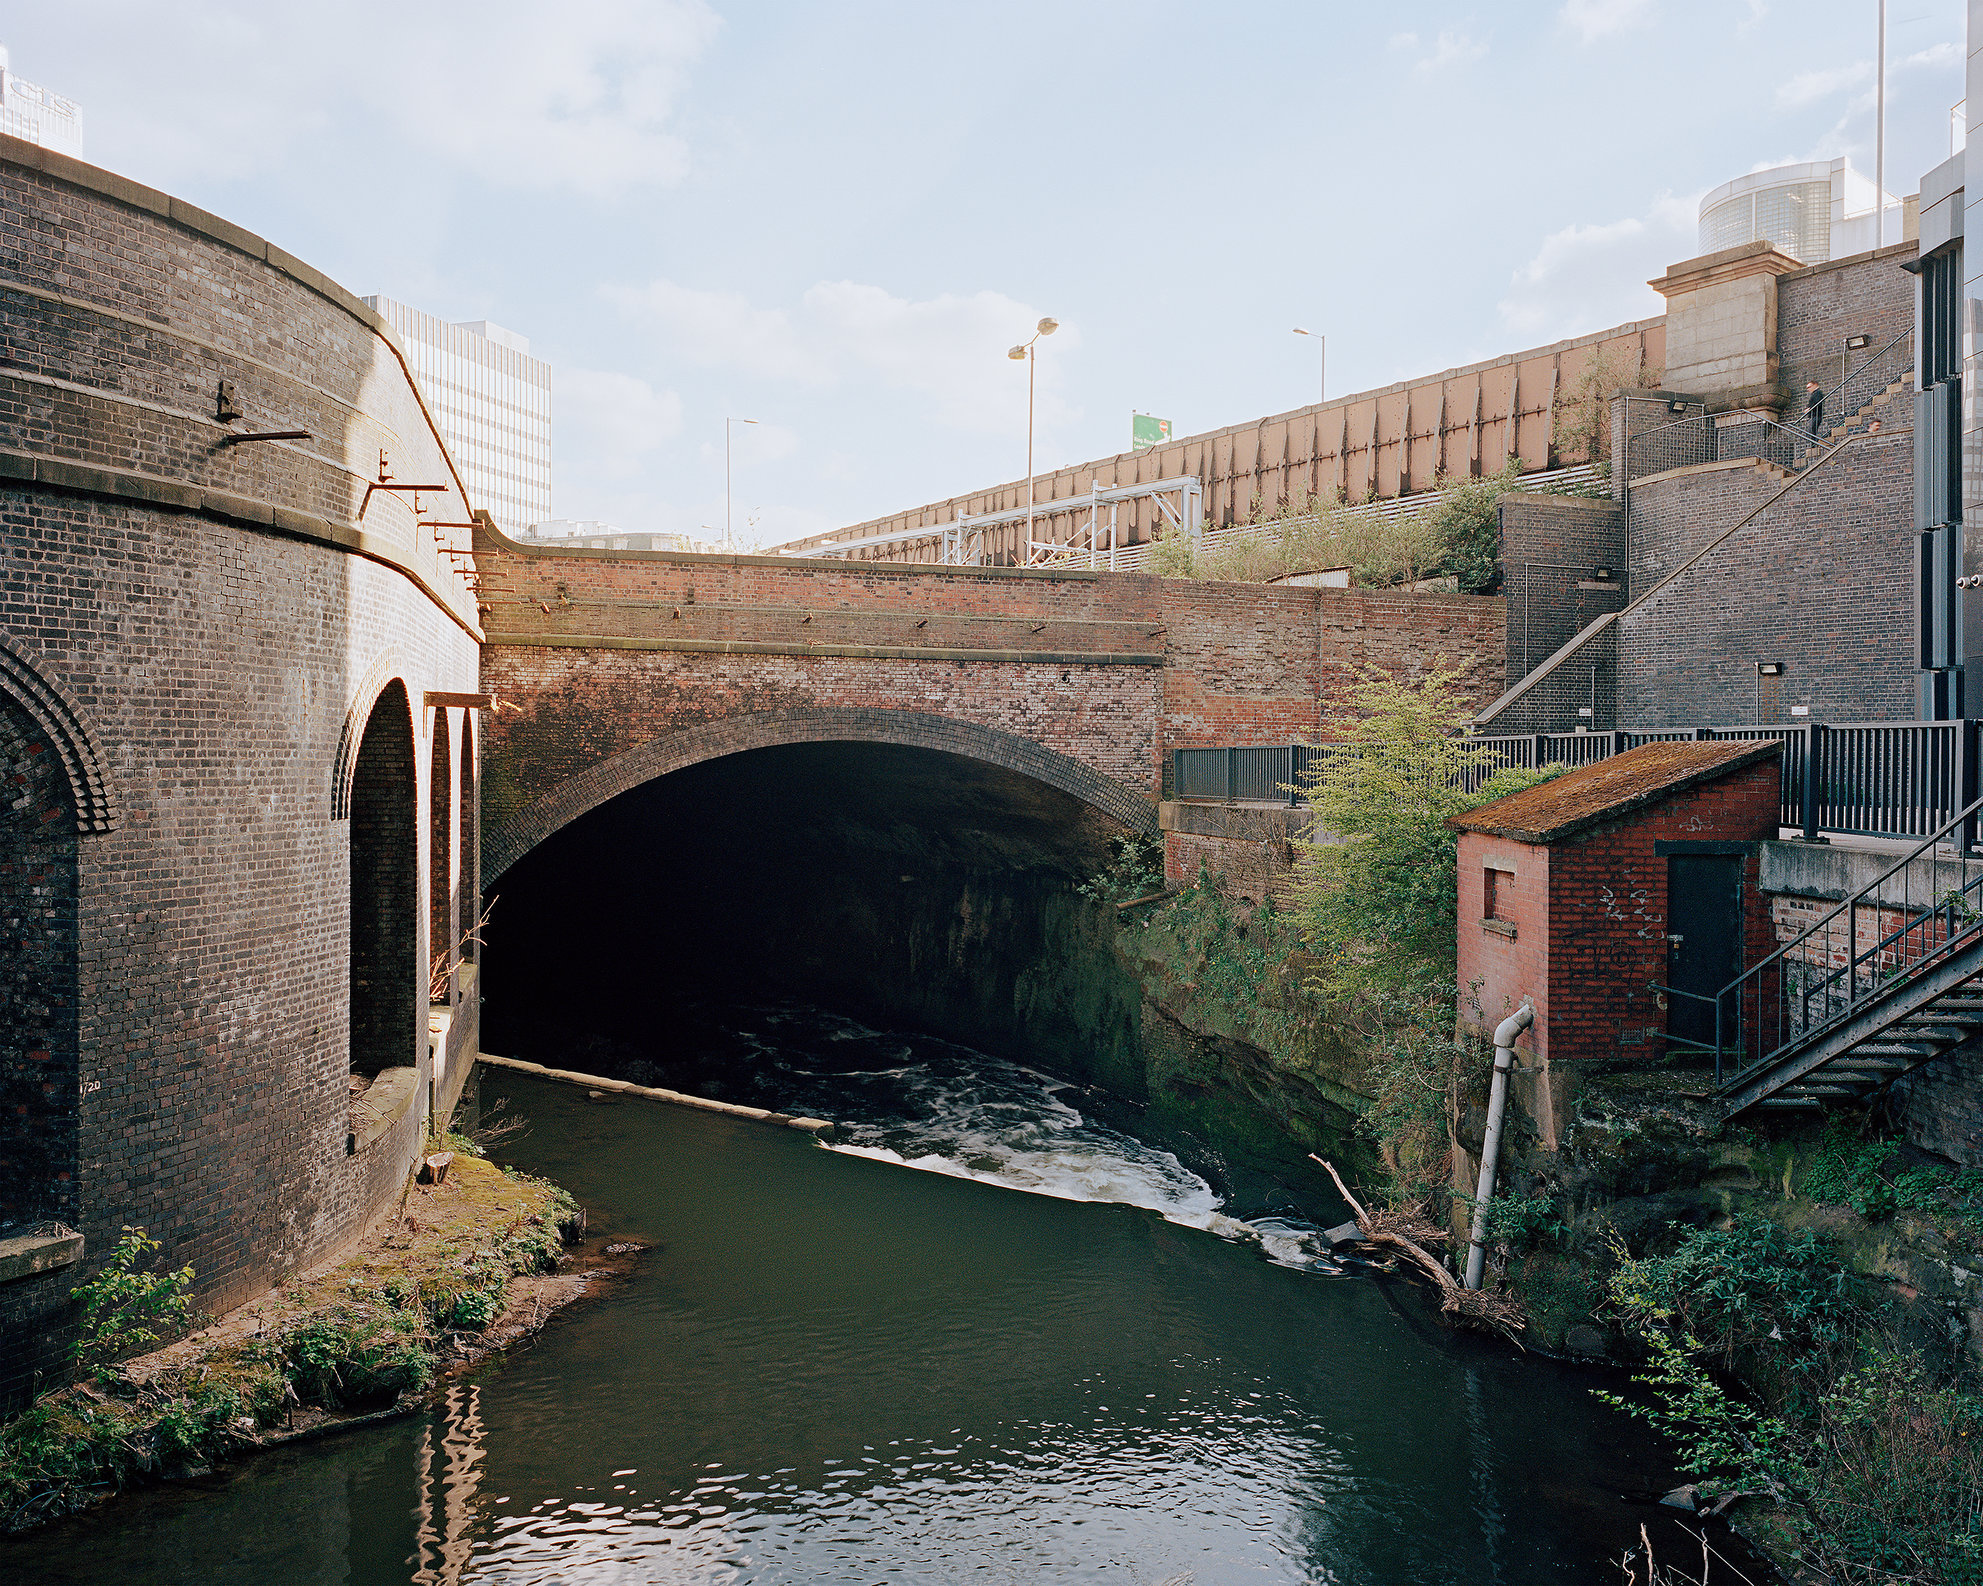 River Irk, Central Manchester